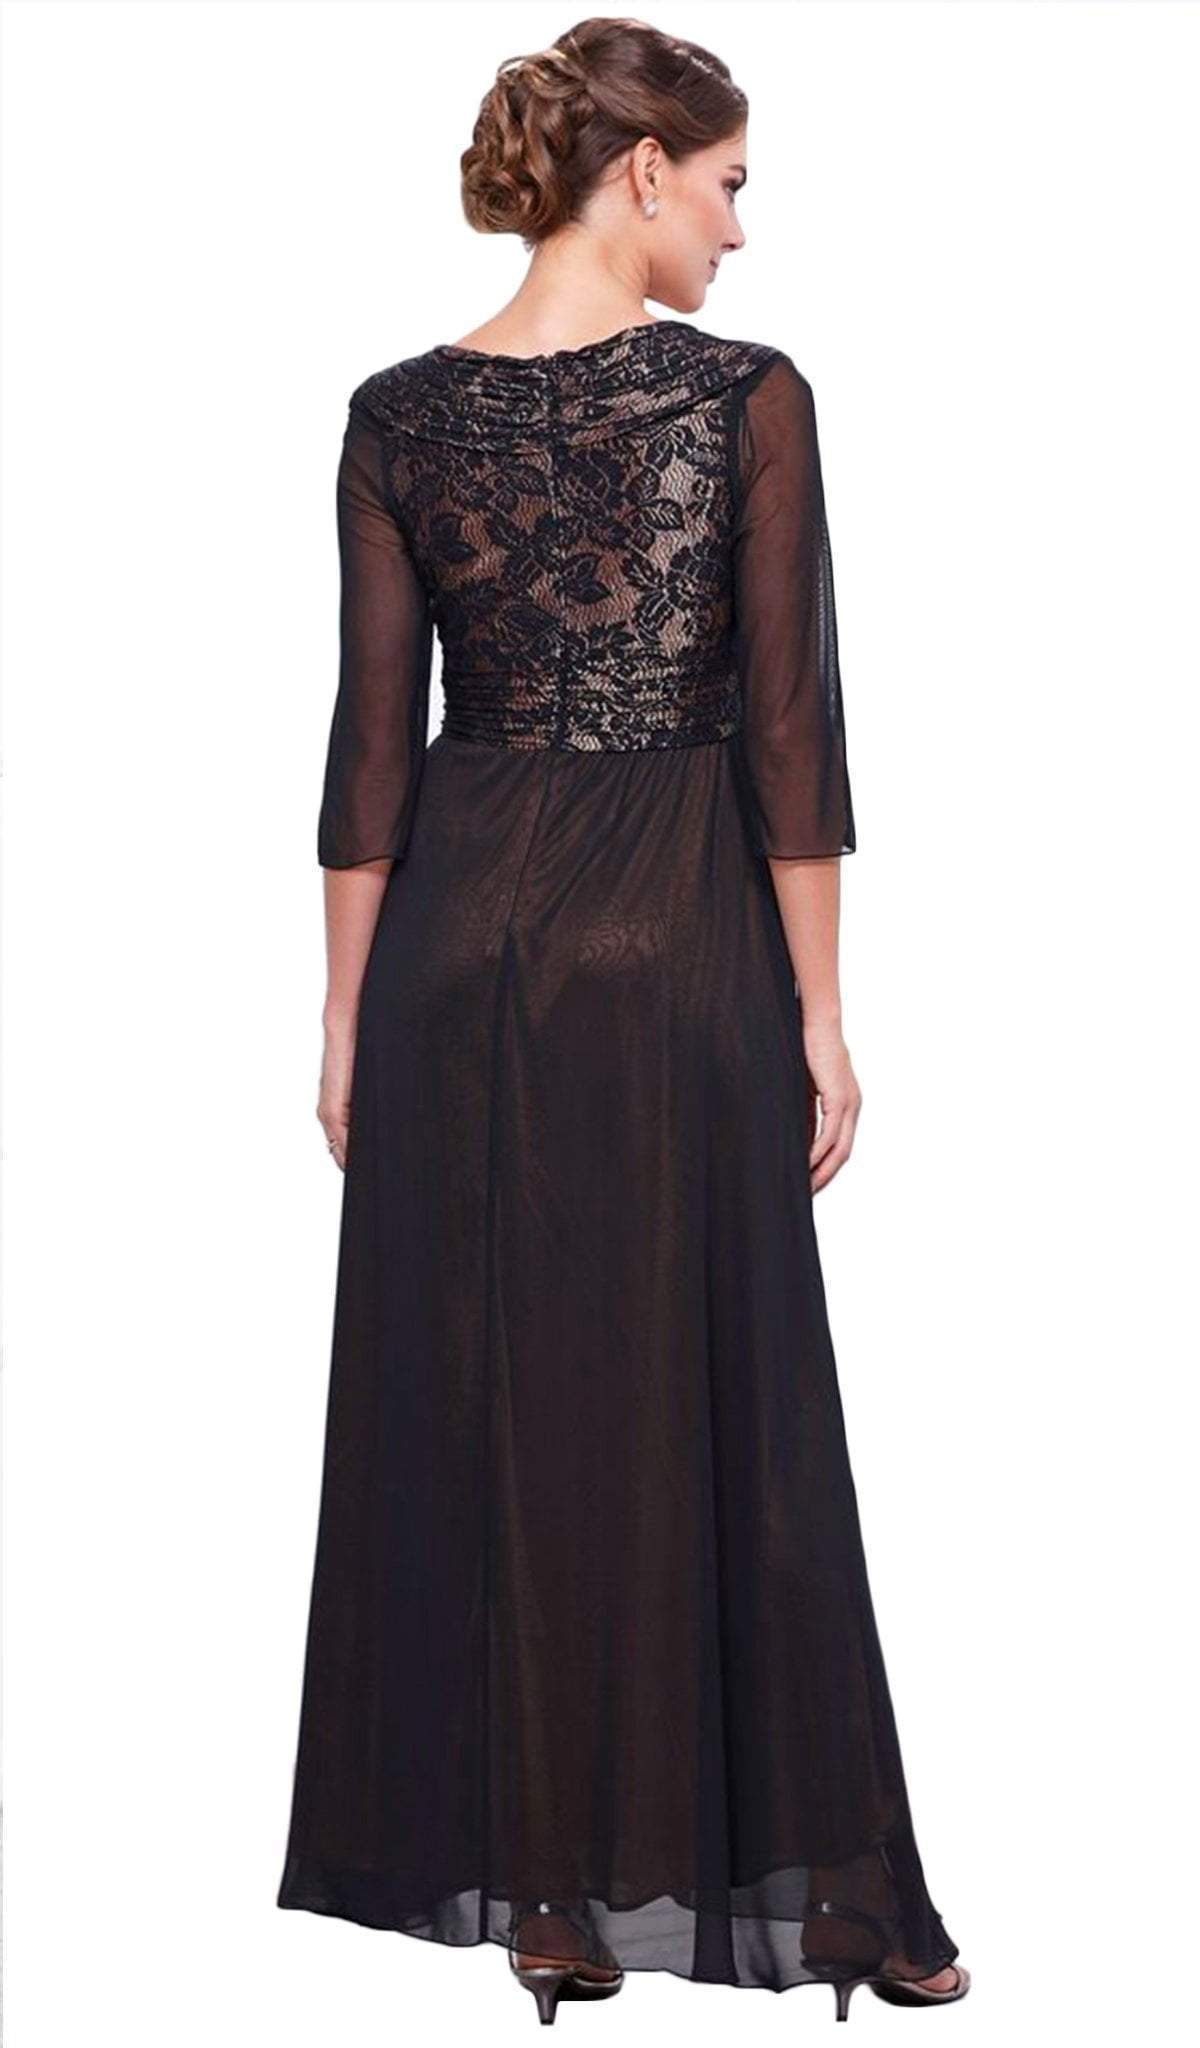 Nox Anabel - V-Neck Empire A-line Dress 5126SC